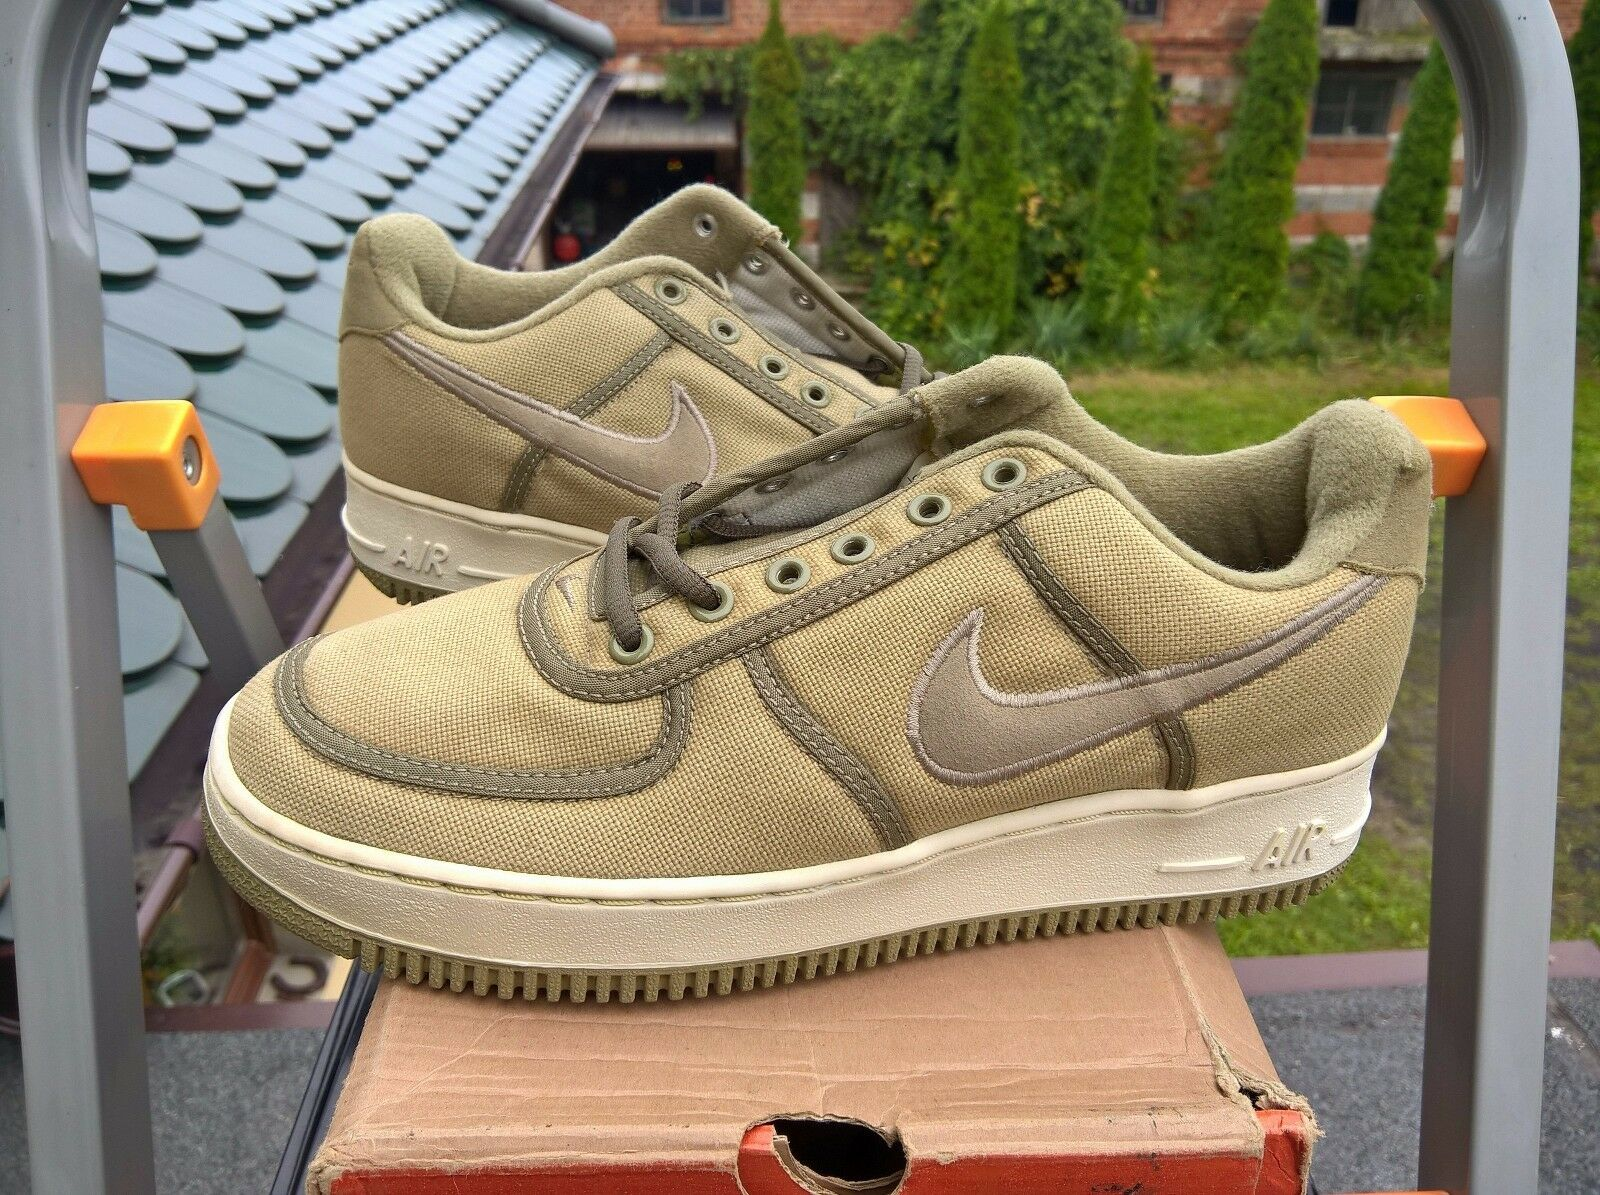 VINTAGE NIKE AIR FORCE 1 LOW CANVAS 2000 US8.5 US8.5 US8.5 AF1 CO.JP ATMOS RARE SUPREME KITH 005bc3